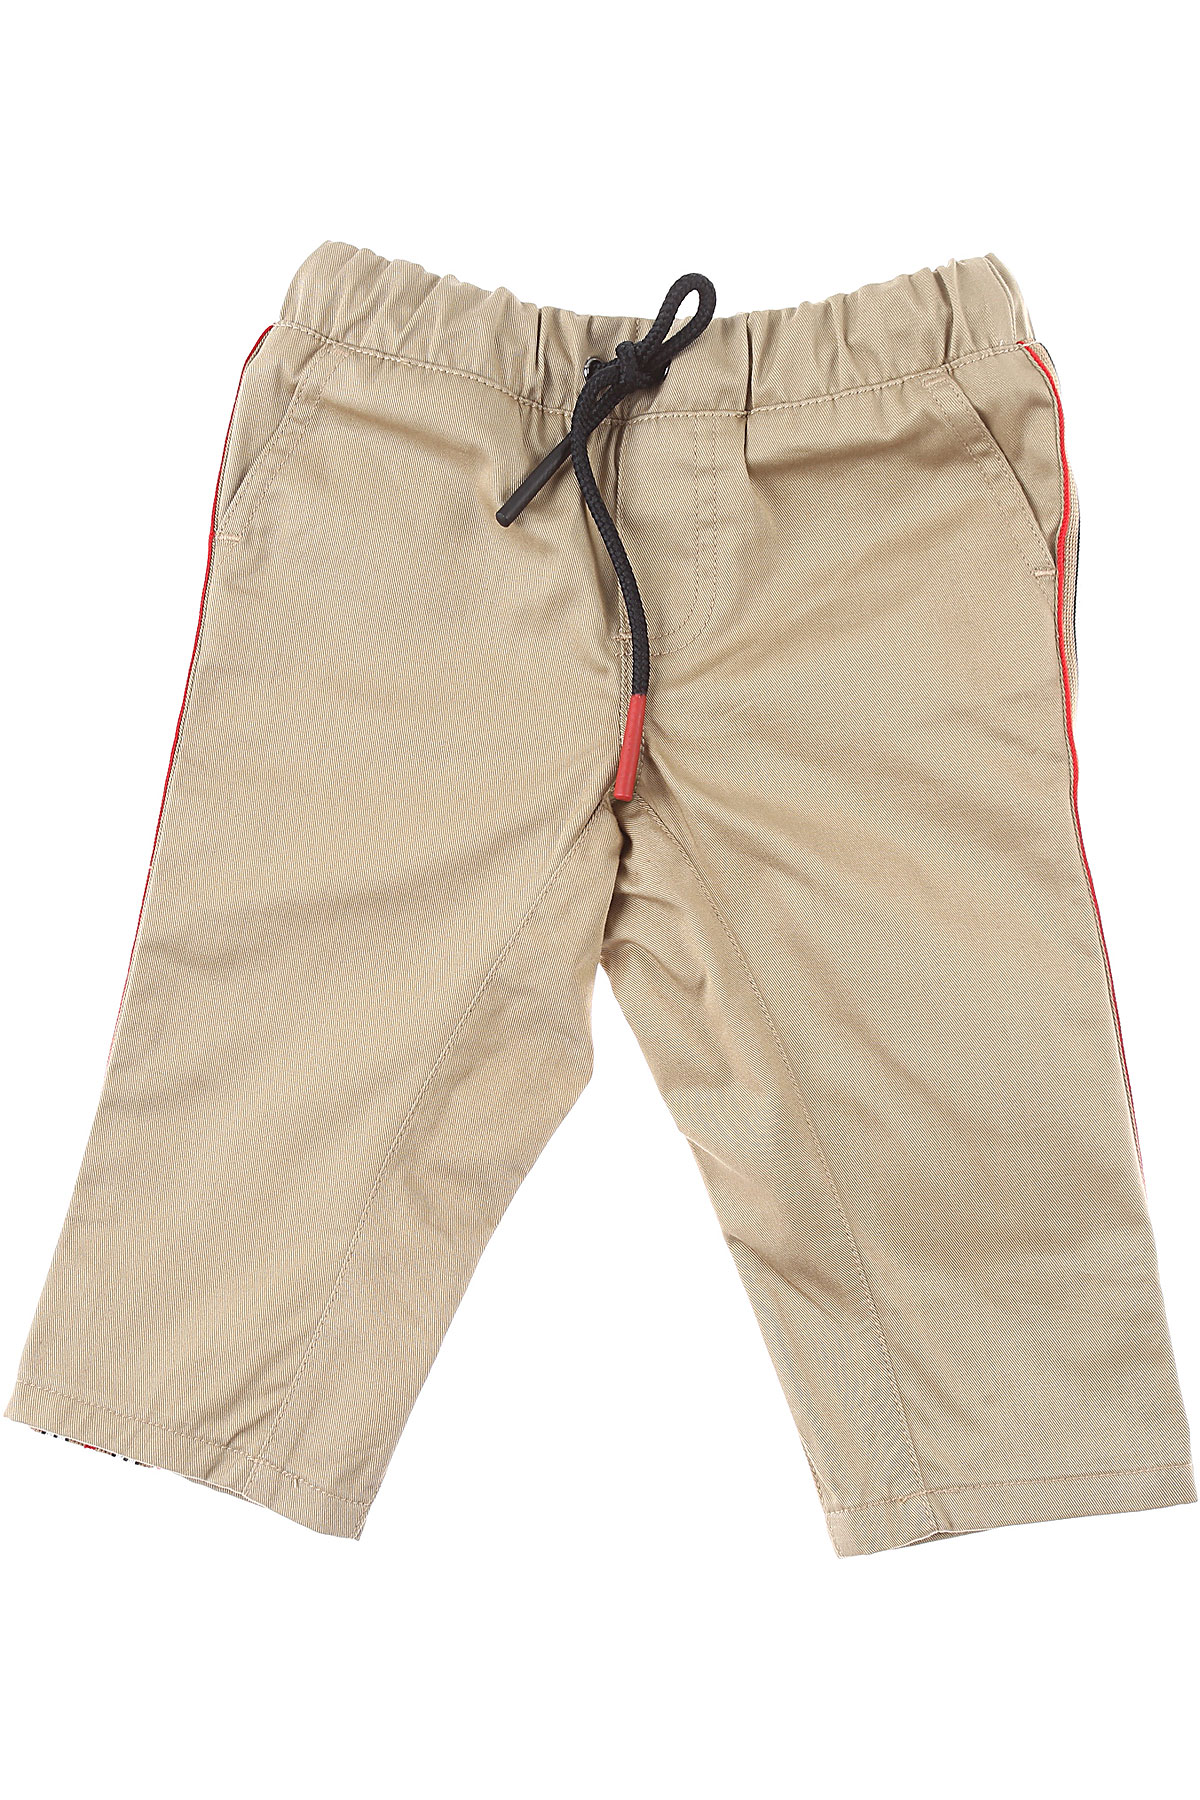 Burberry Baby Pants for Boys On Sale, Beige, Cotton, 2019, 12 M 18 M 2Y 6M